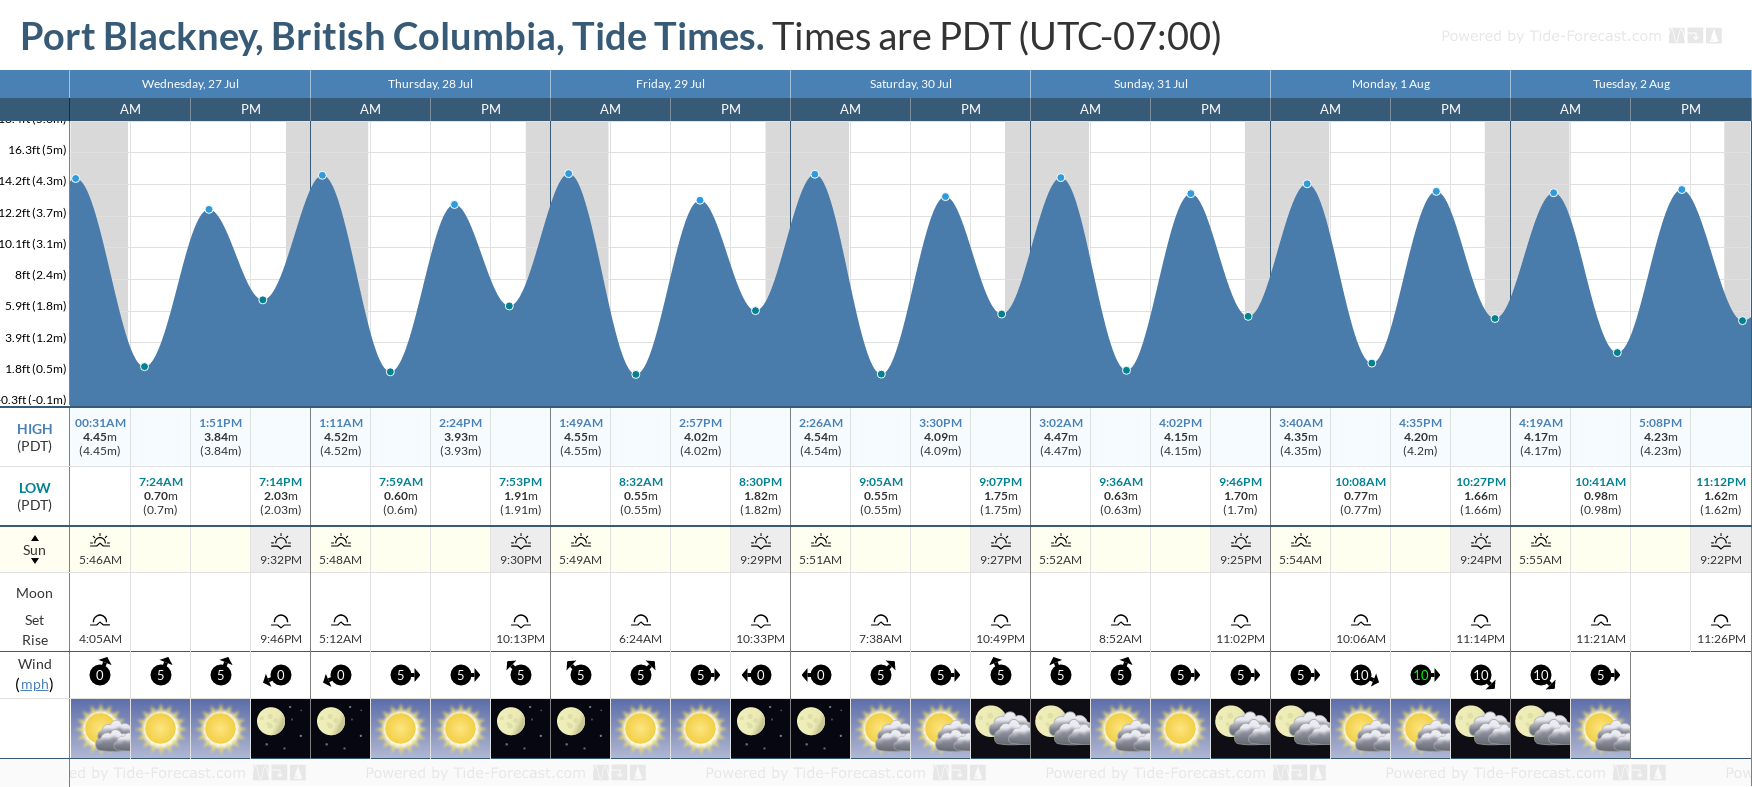 Port Blackney, British Columbia Tide Chart including high and low tide tide times for the next 7 days